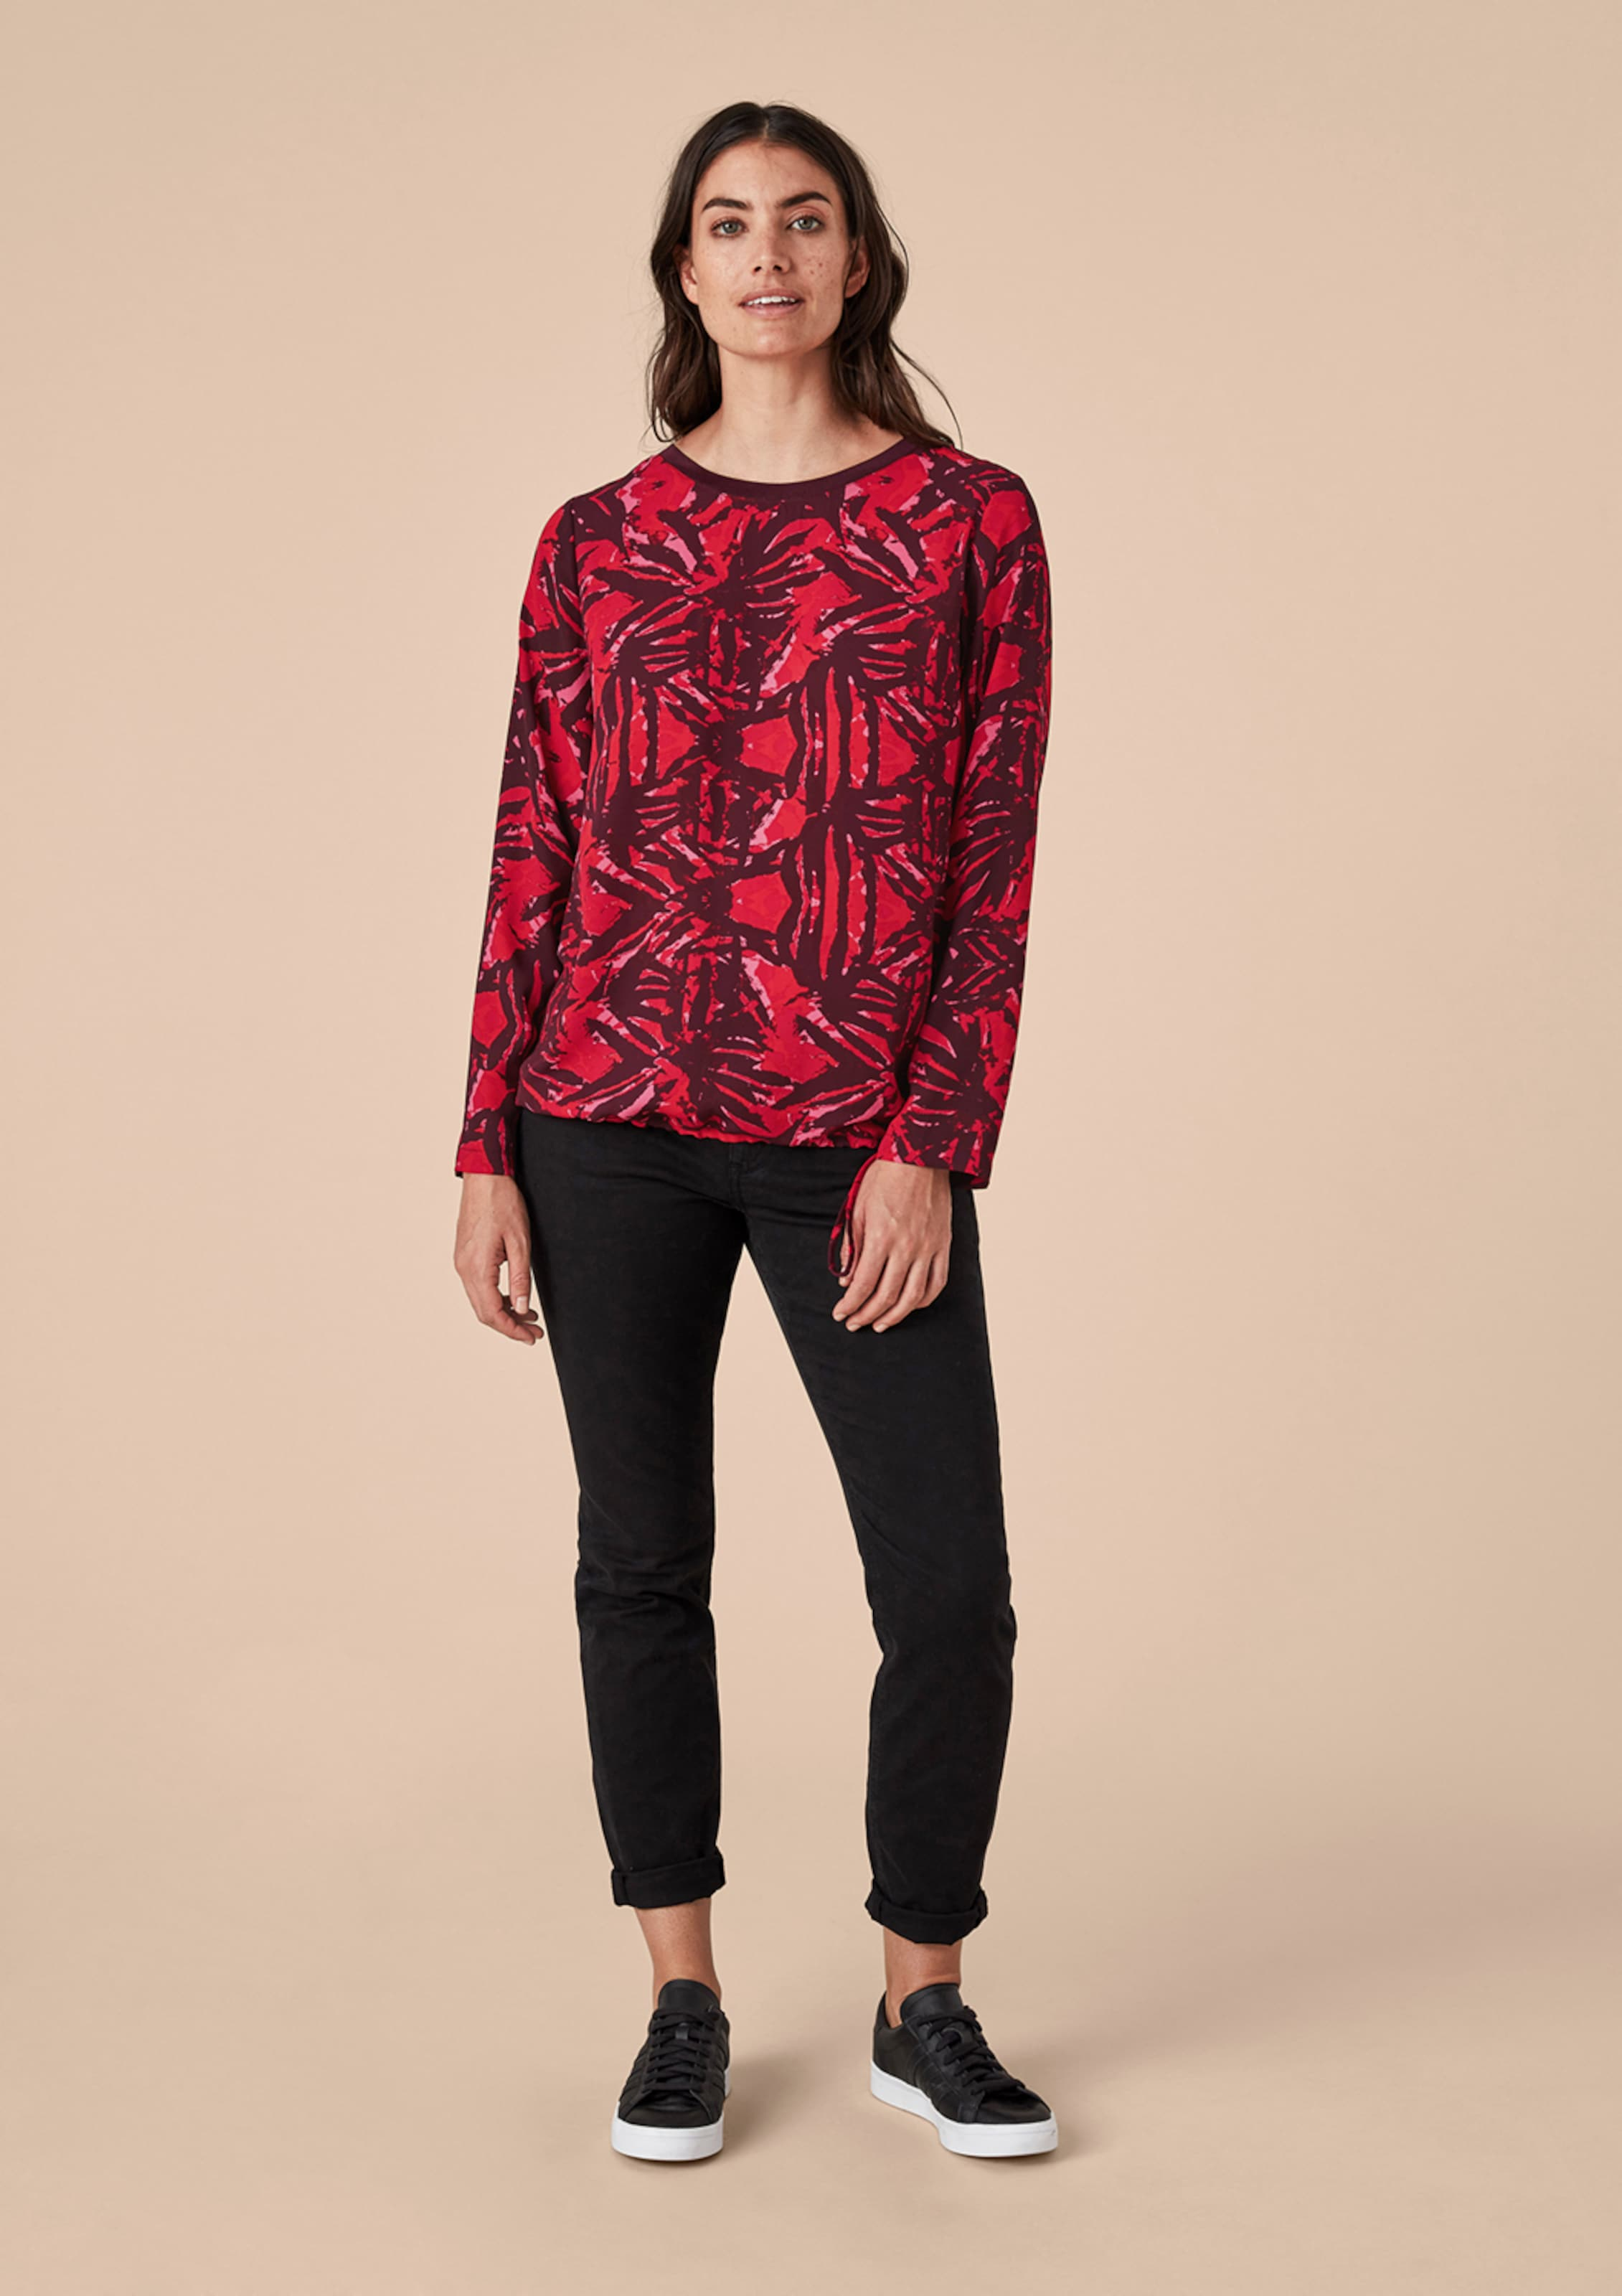 Bluse In RotBurgunder Triangle Triangle In Triangle Bluse RotBurgunder OPkXuZi